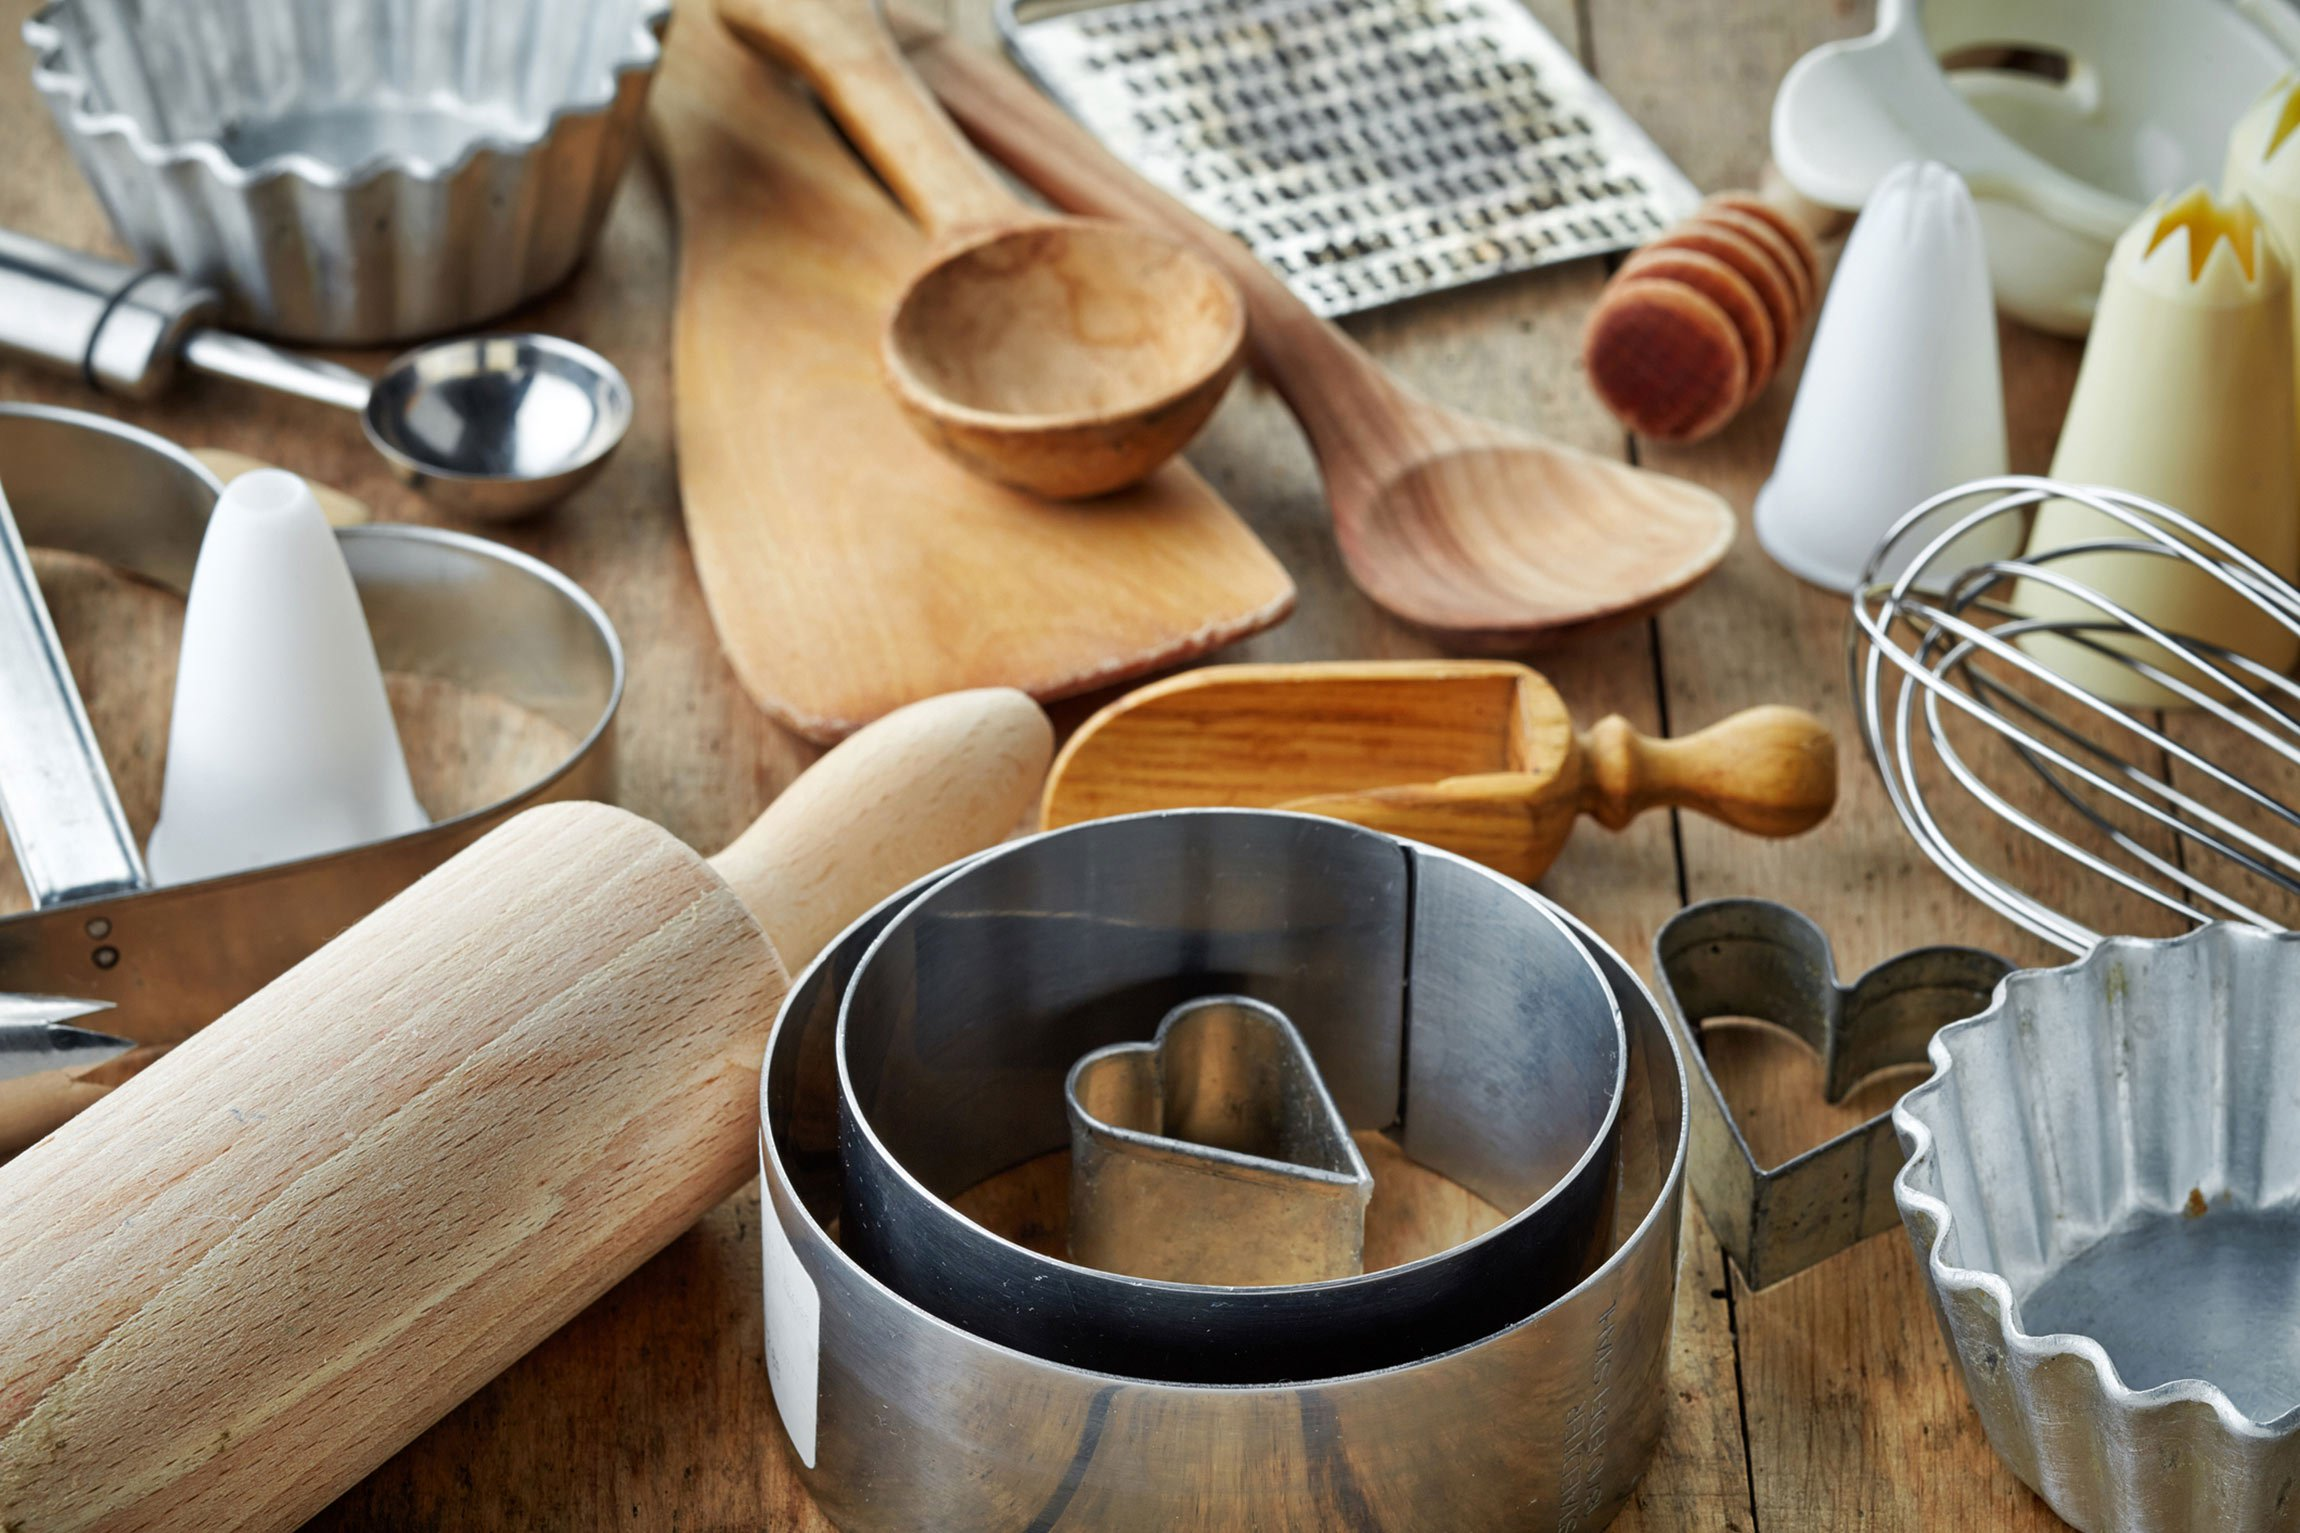 Baking and cooking tools